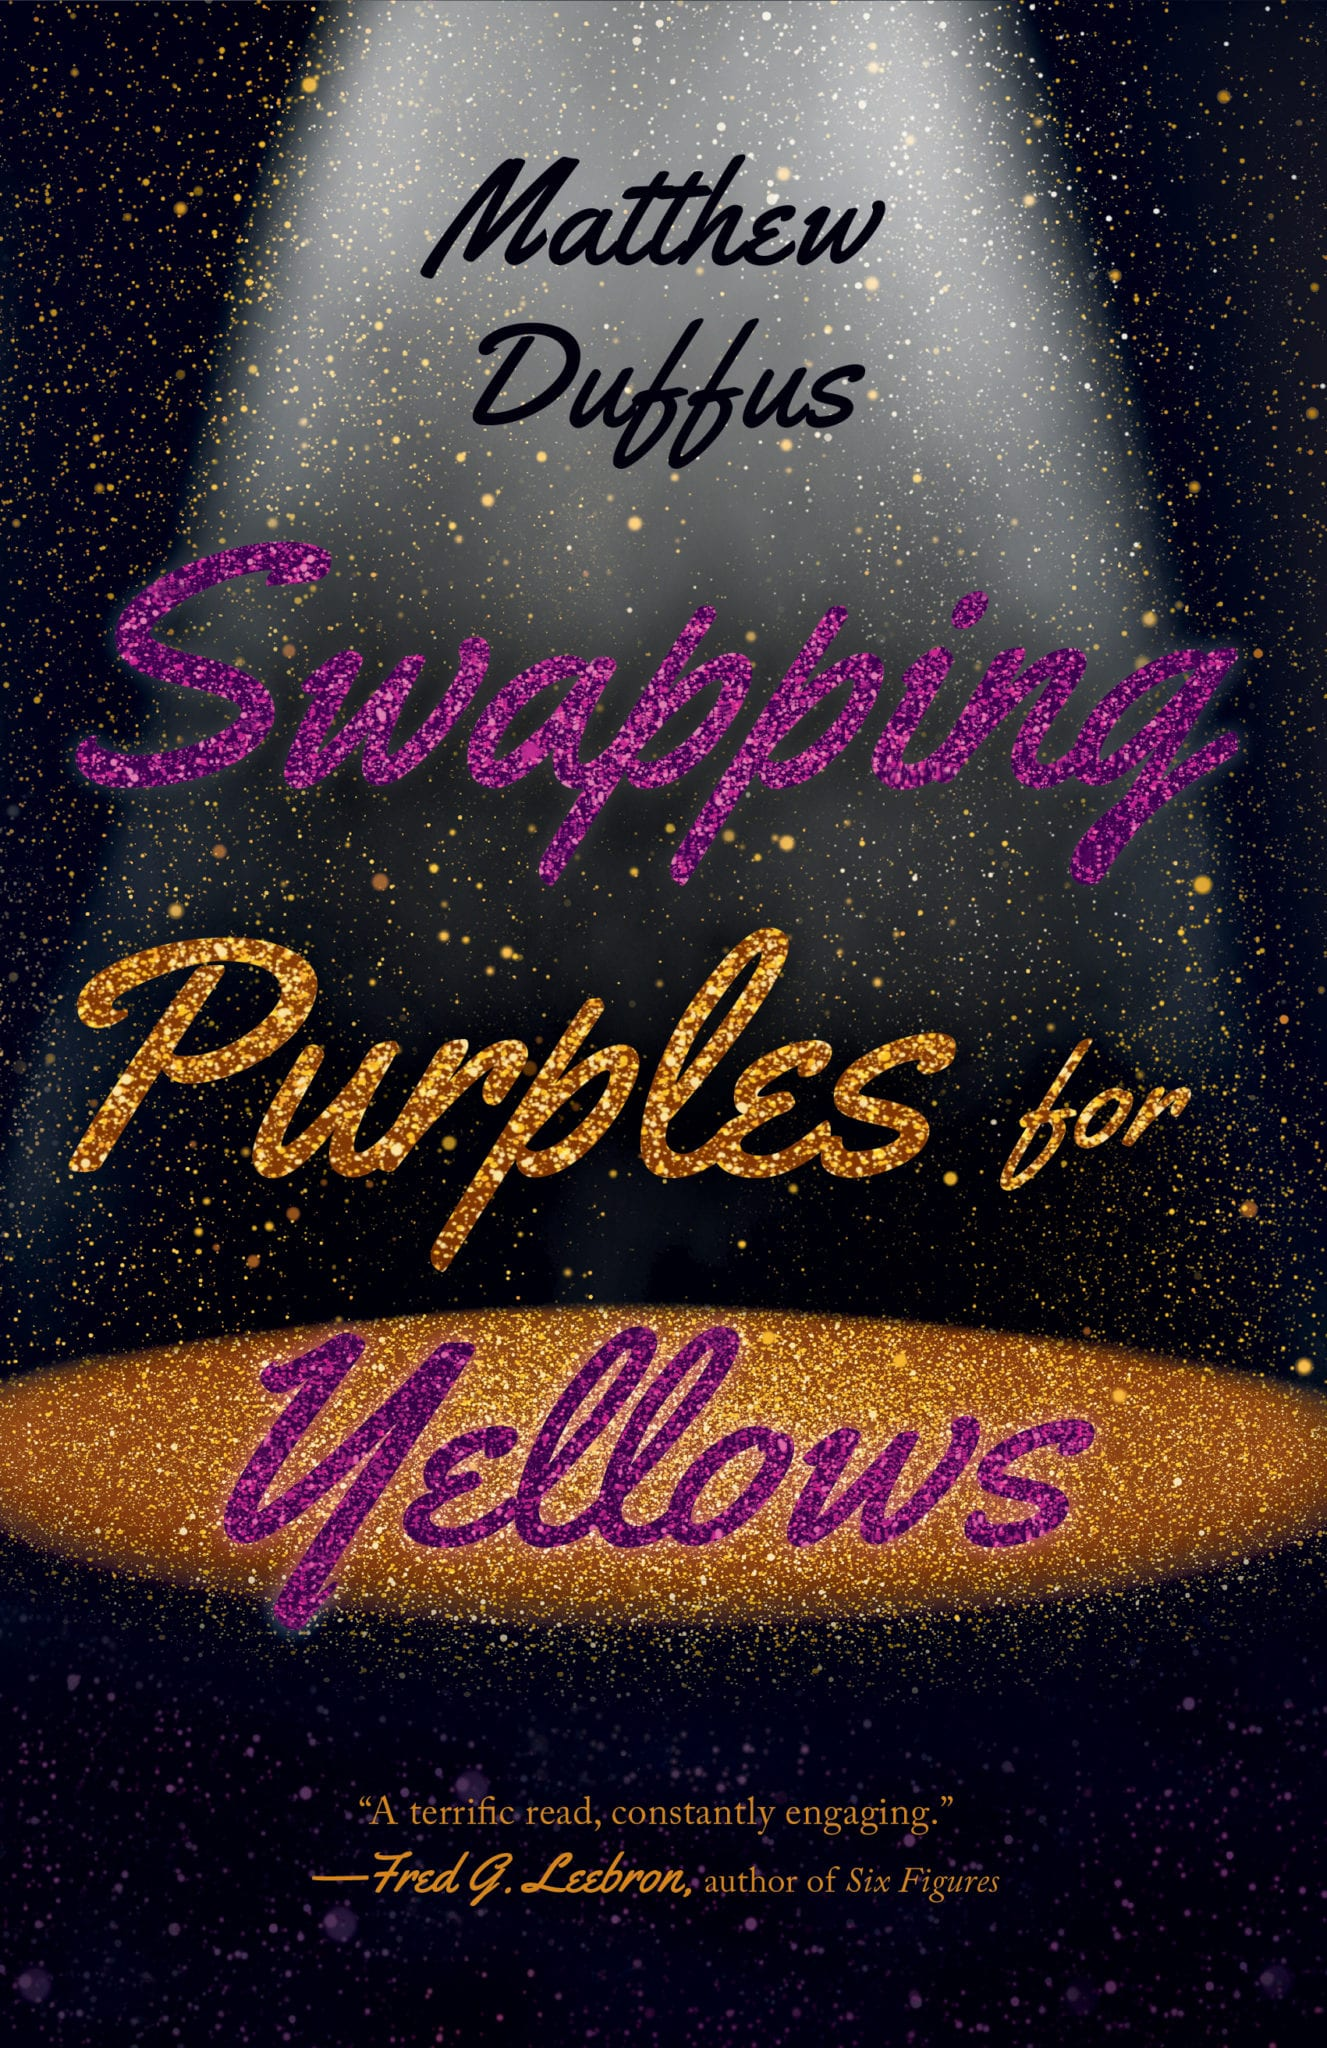 Swapping Purples for Yellows